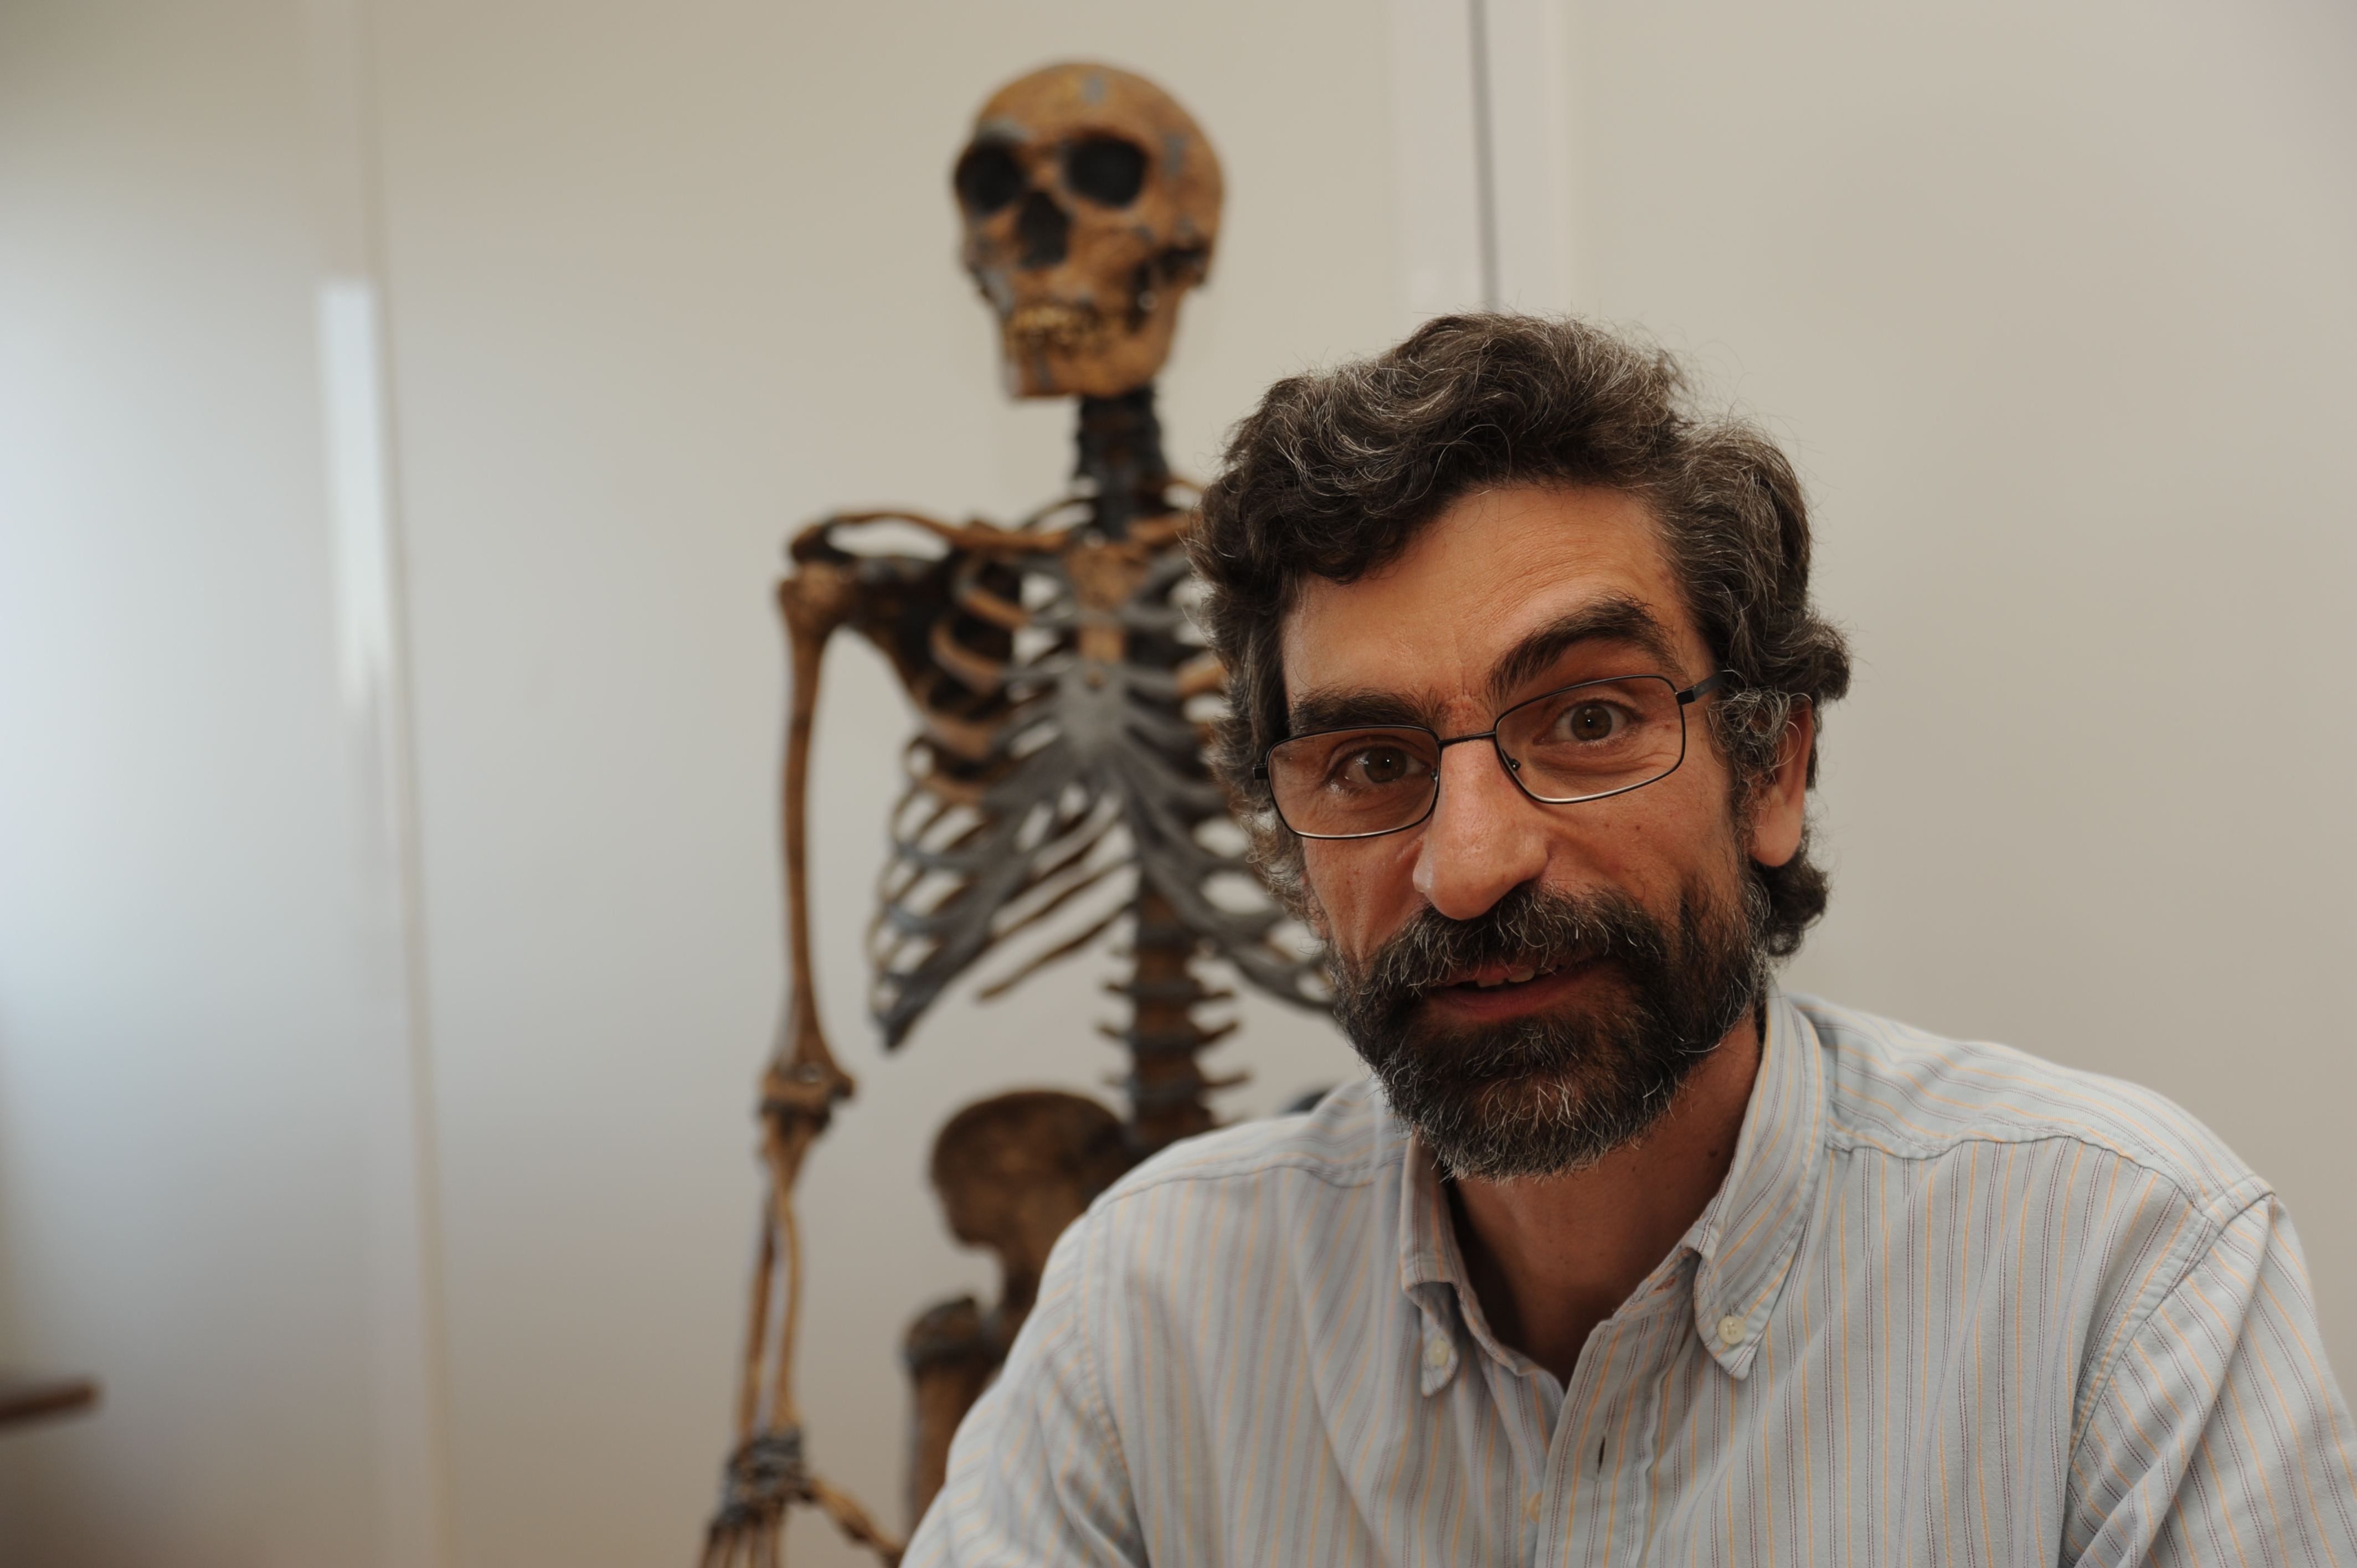 Image: Antonio Rosas, Paleoanthropology Group, Department of Paleobiology, Museo Nacional de Ciencias Naturales (CSIC), Madrid, Spain, with the remains of a Neanderthal skeleton. Credit: CSIC Comunicación